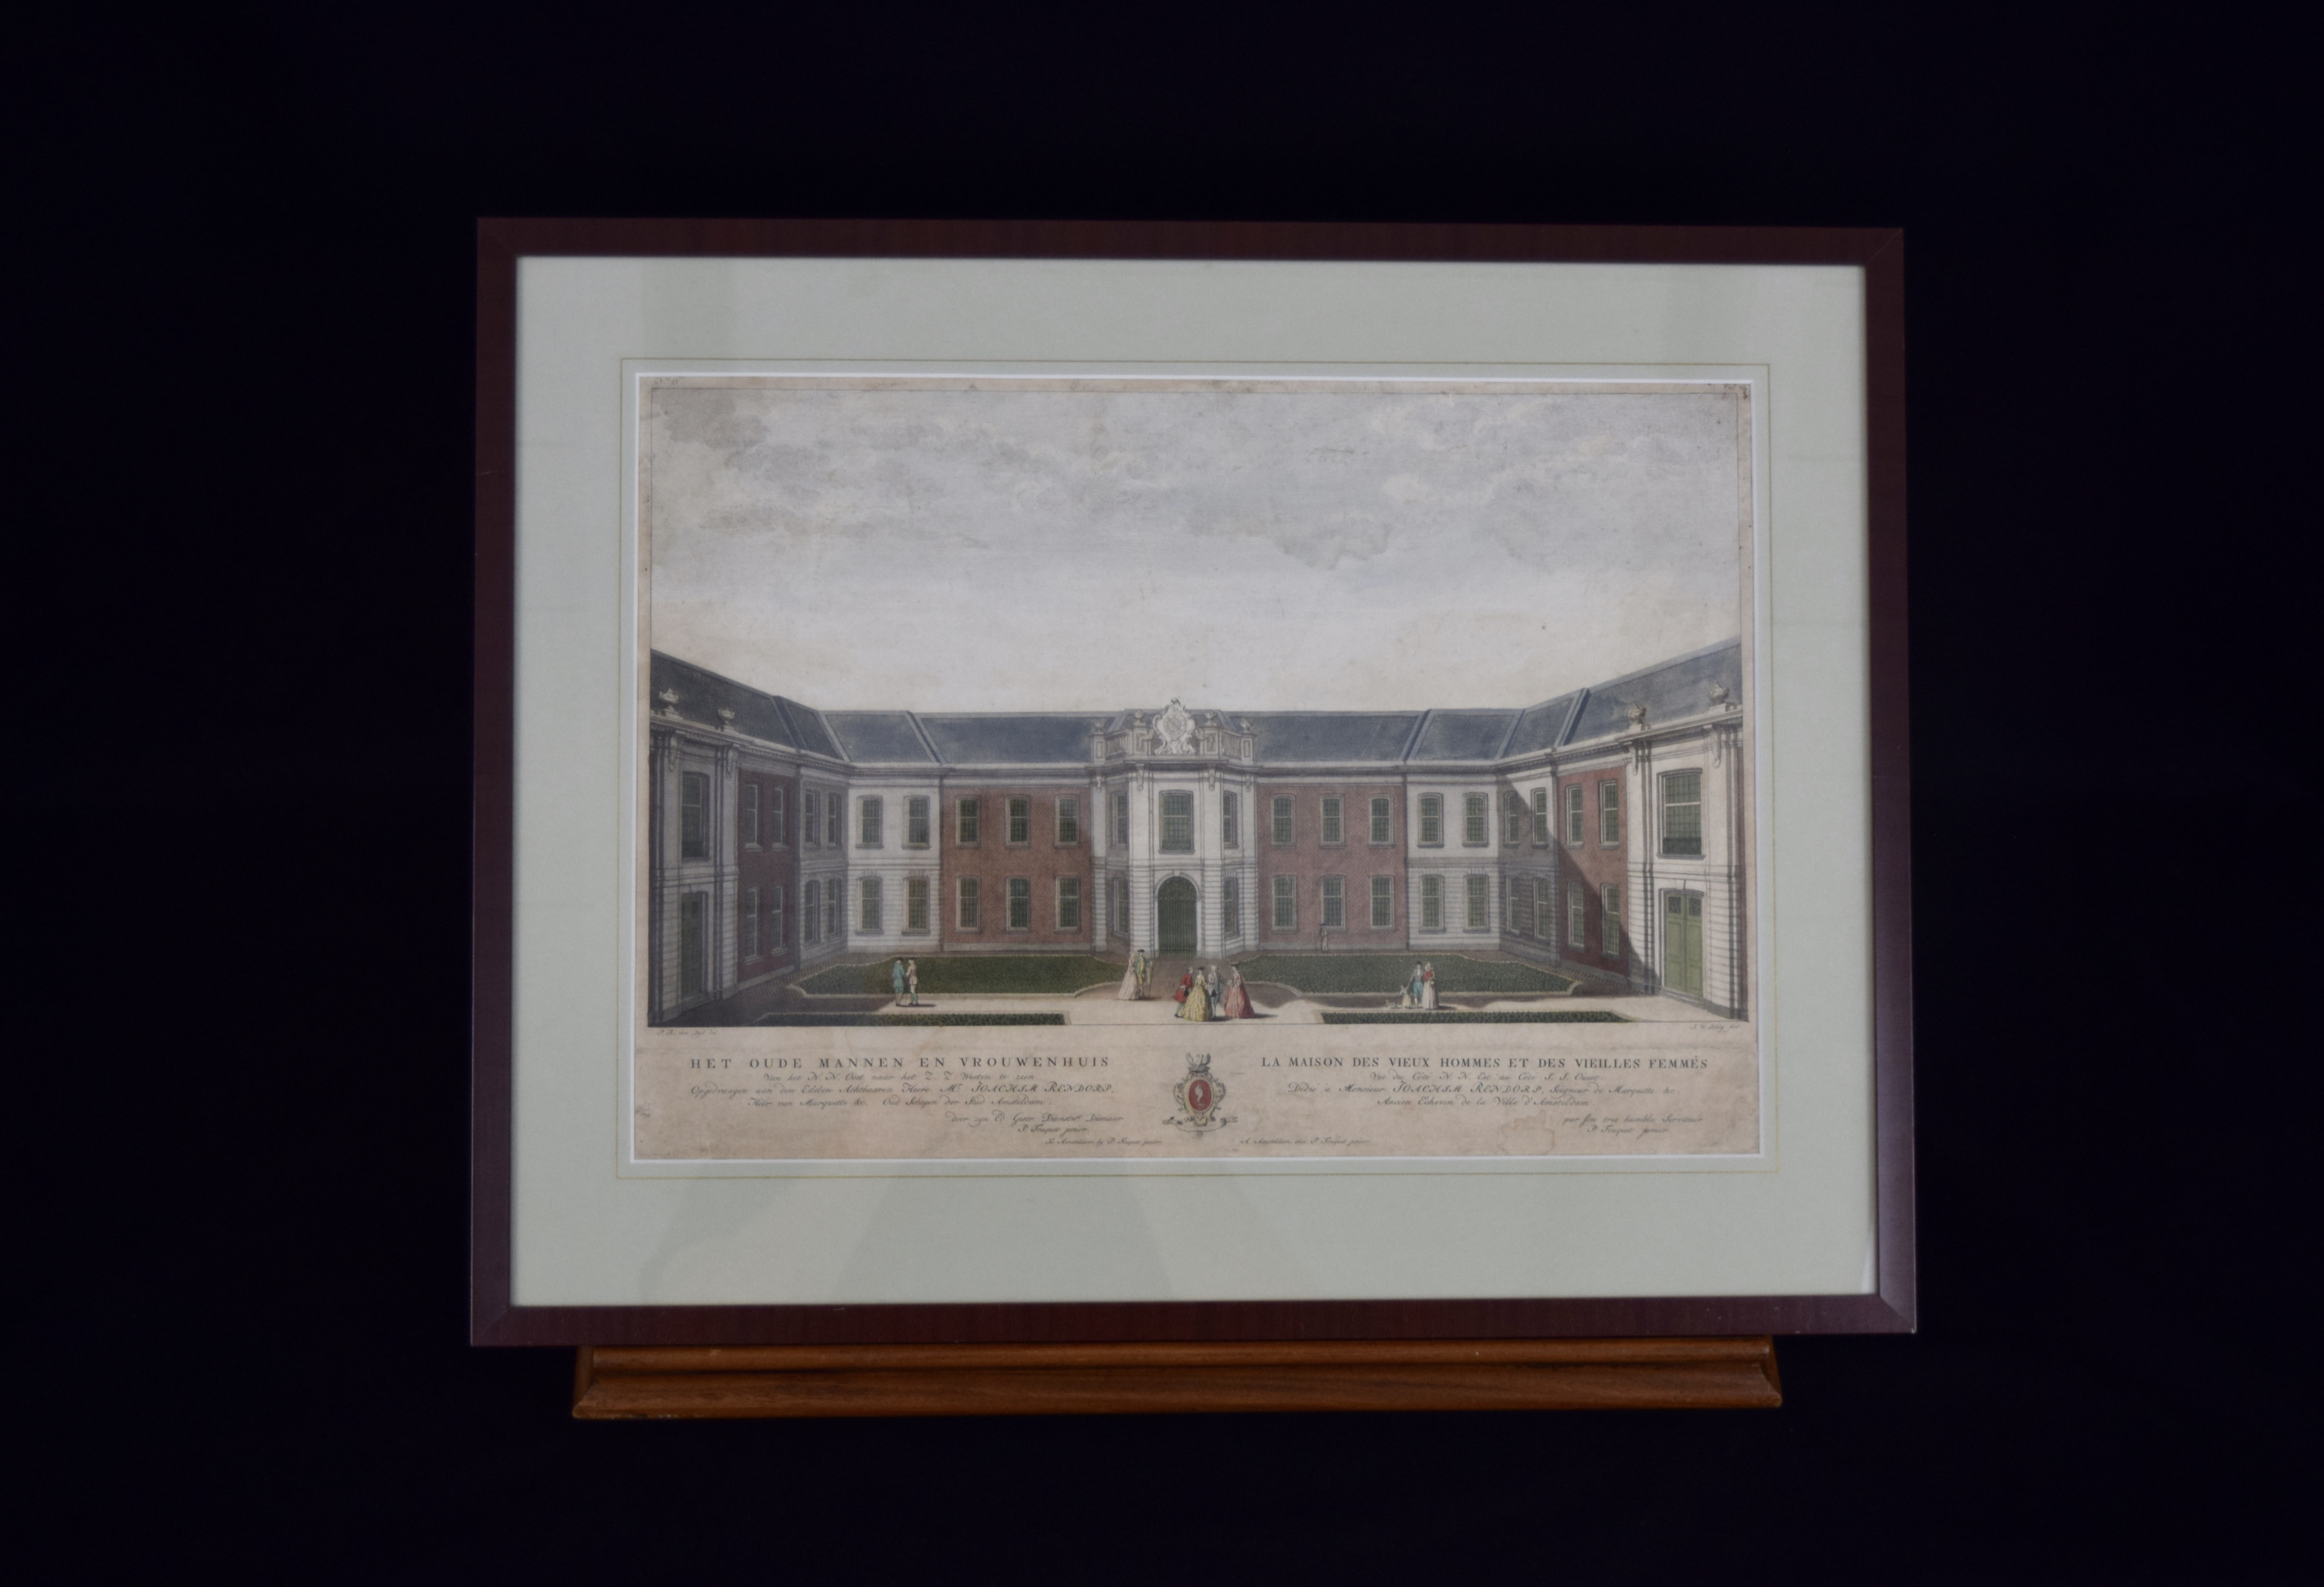 Original copper plate print from the famous Atlas about Amsterdam by Fouquet Jr